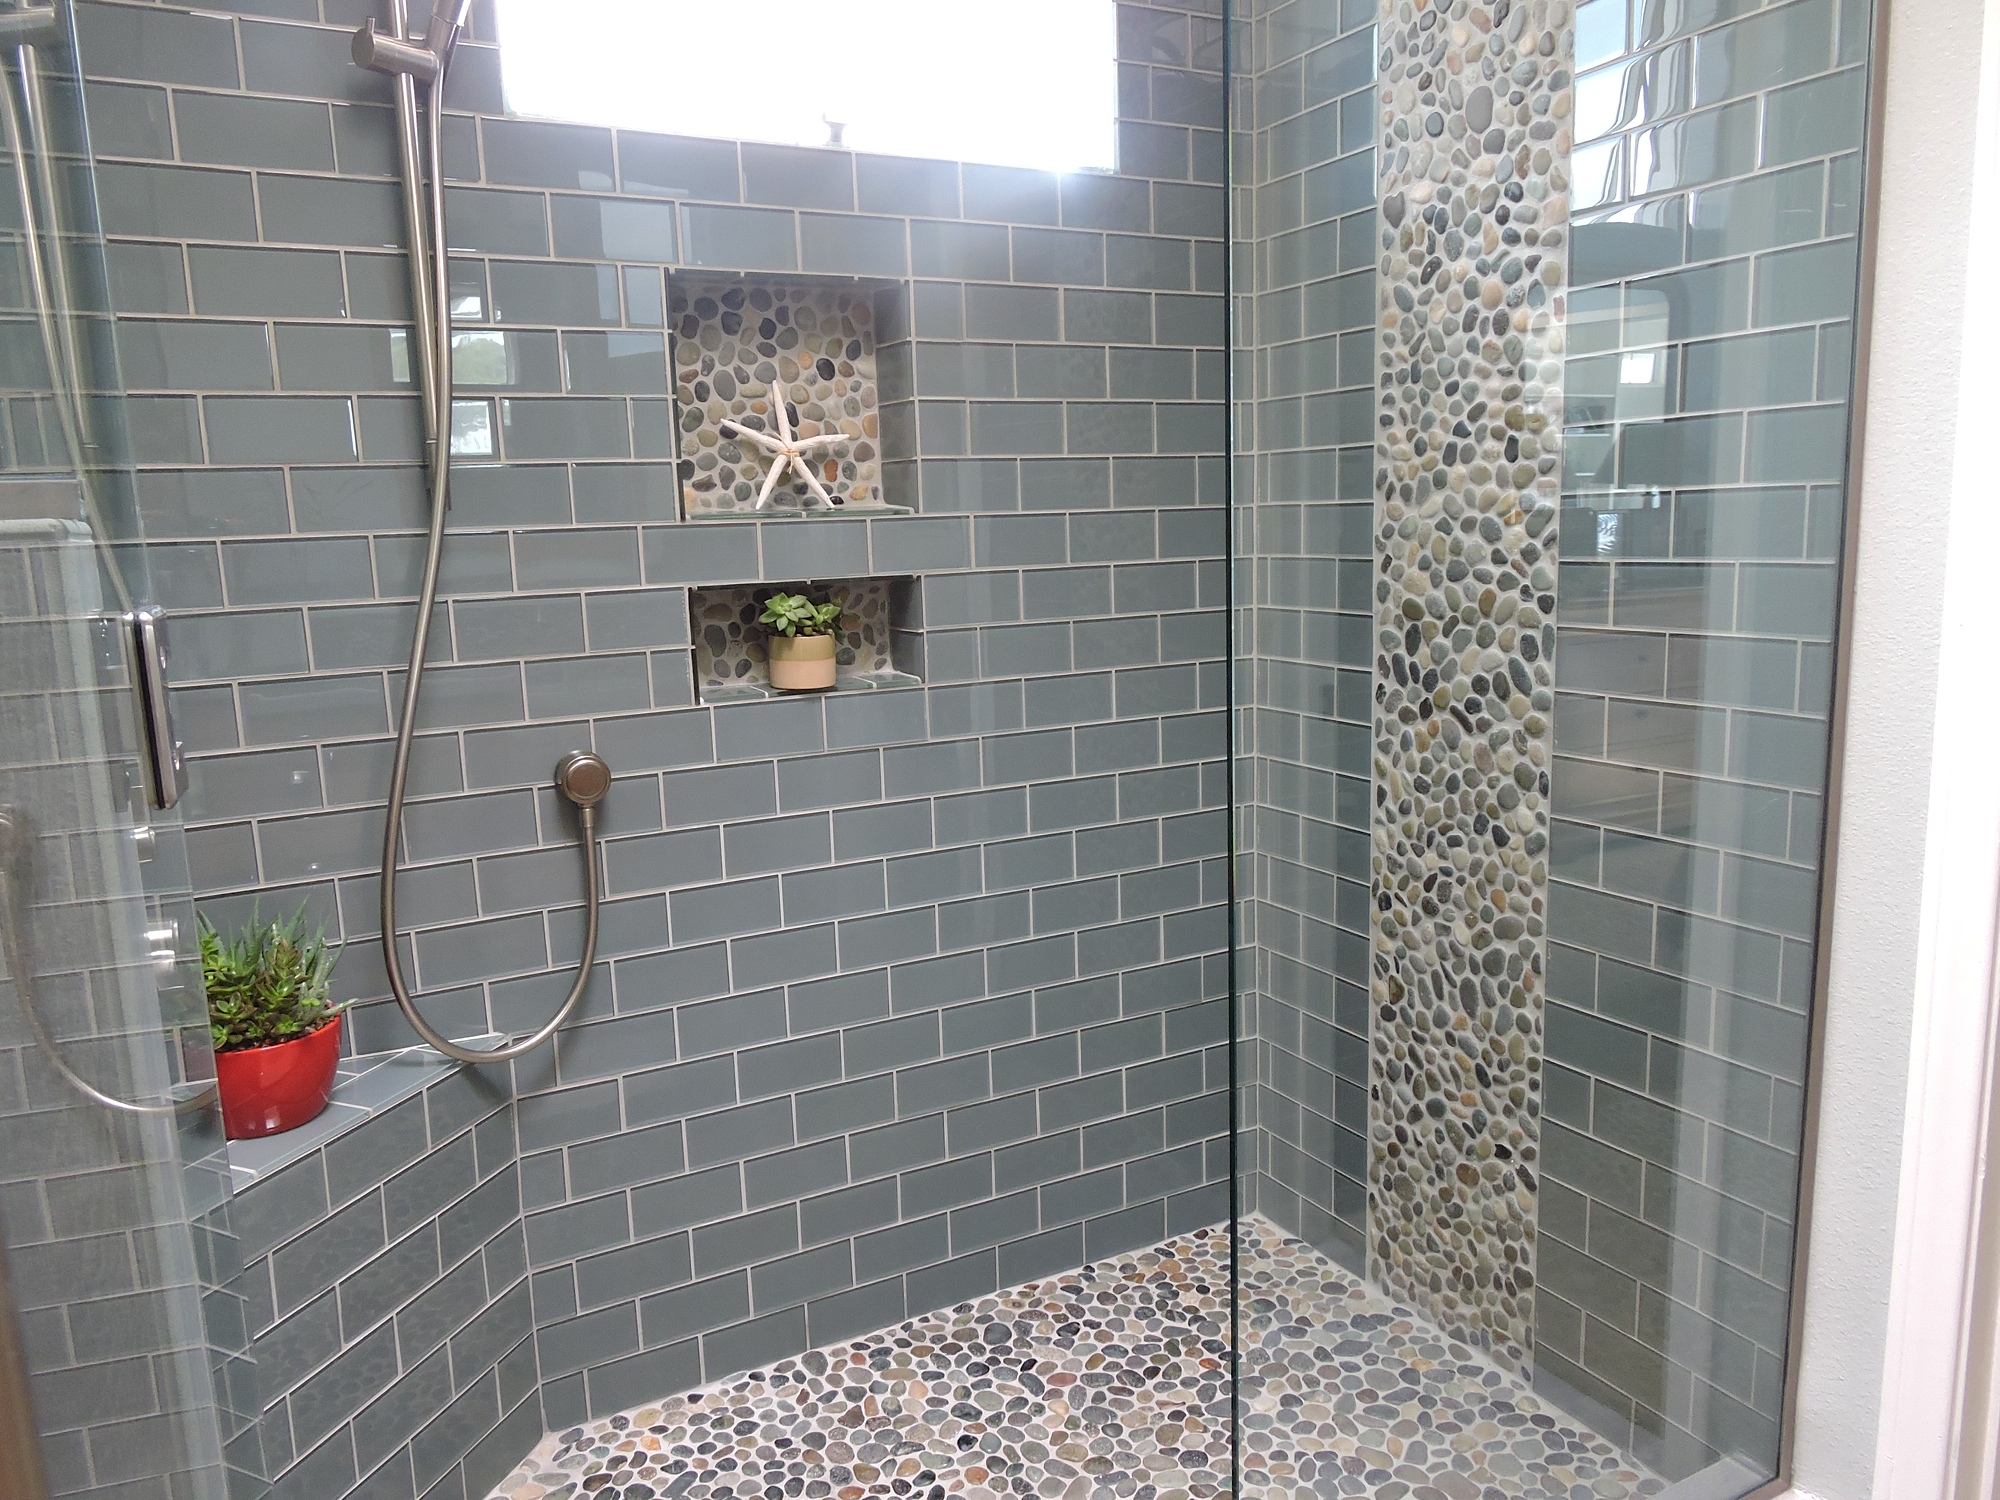 Bali-Ocean-Pebble-Tile-Shower-Floor-with-Accents